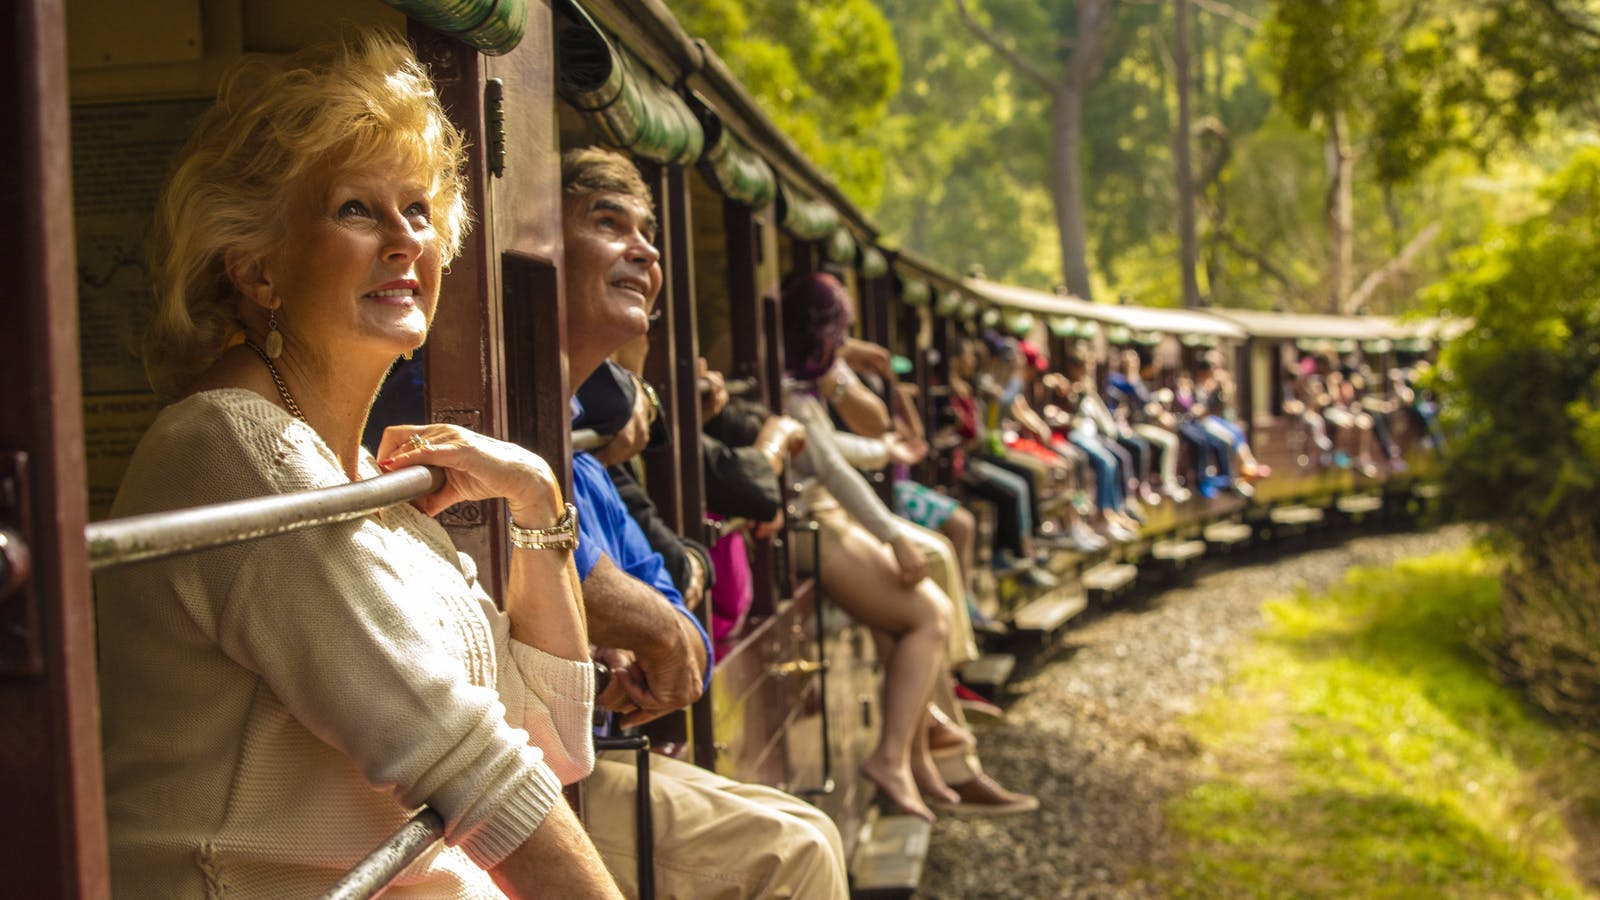 AAT Kings guests on the Puffing Billy Steam Train